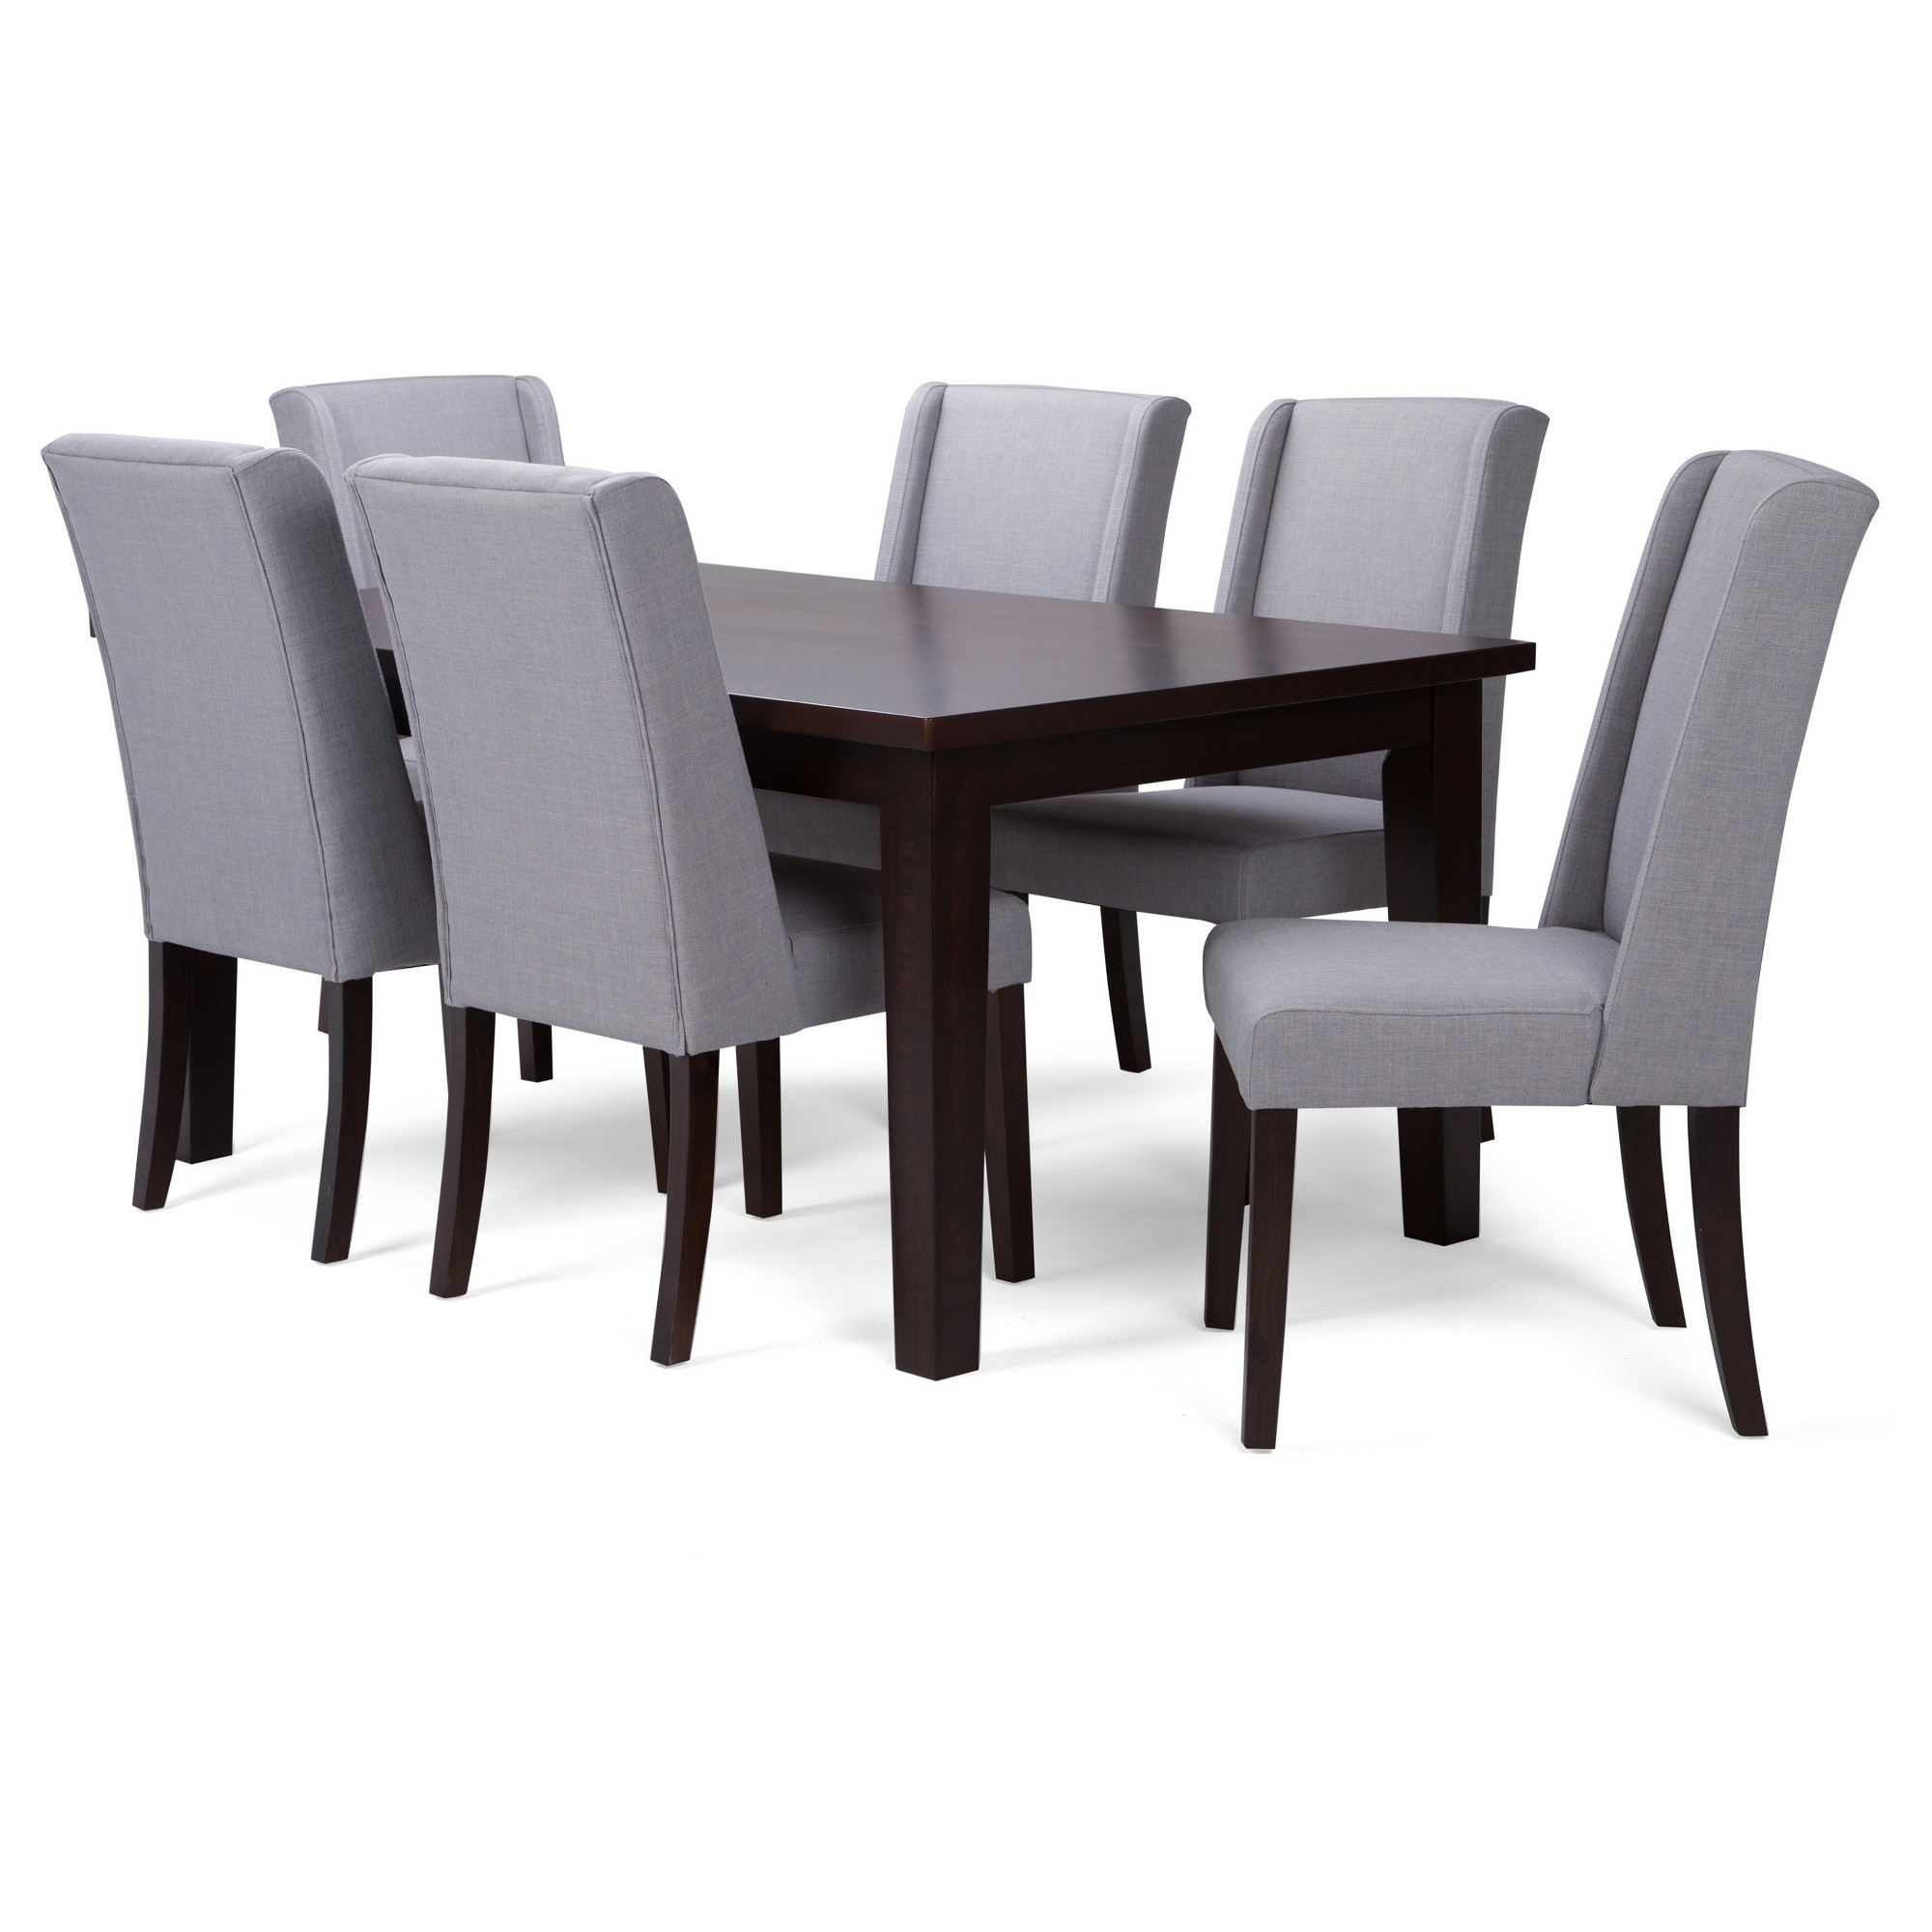 Products Intended For Well Known Walden 7 Piece Extension Dining Sets (View 15 of 25)